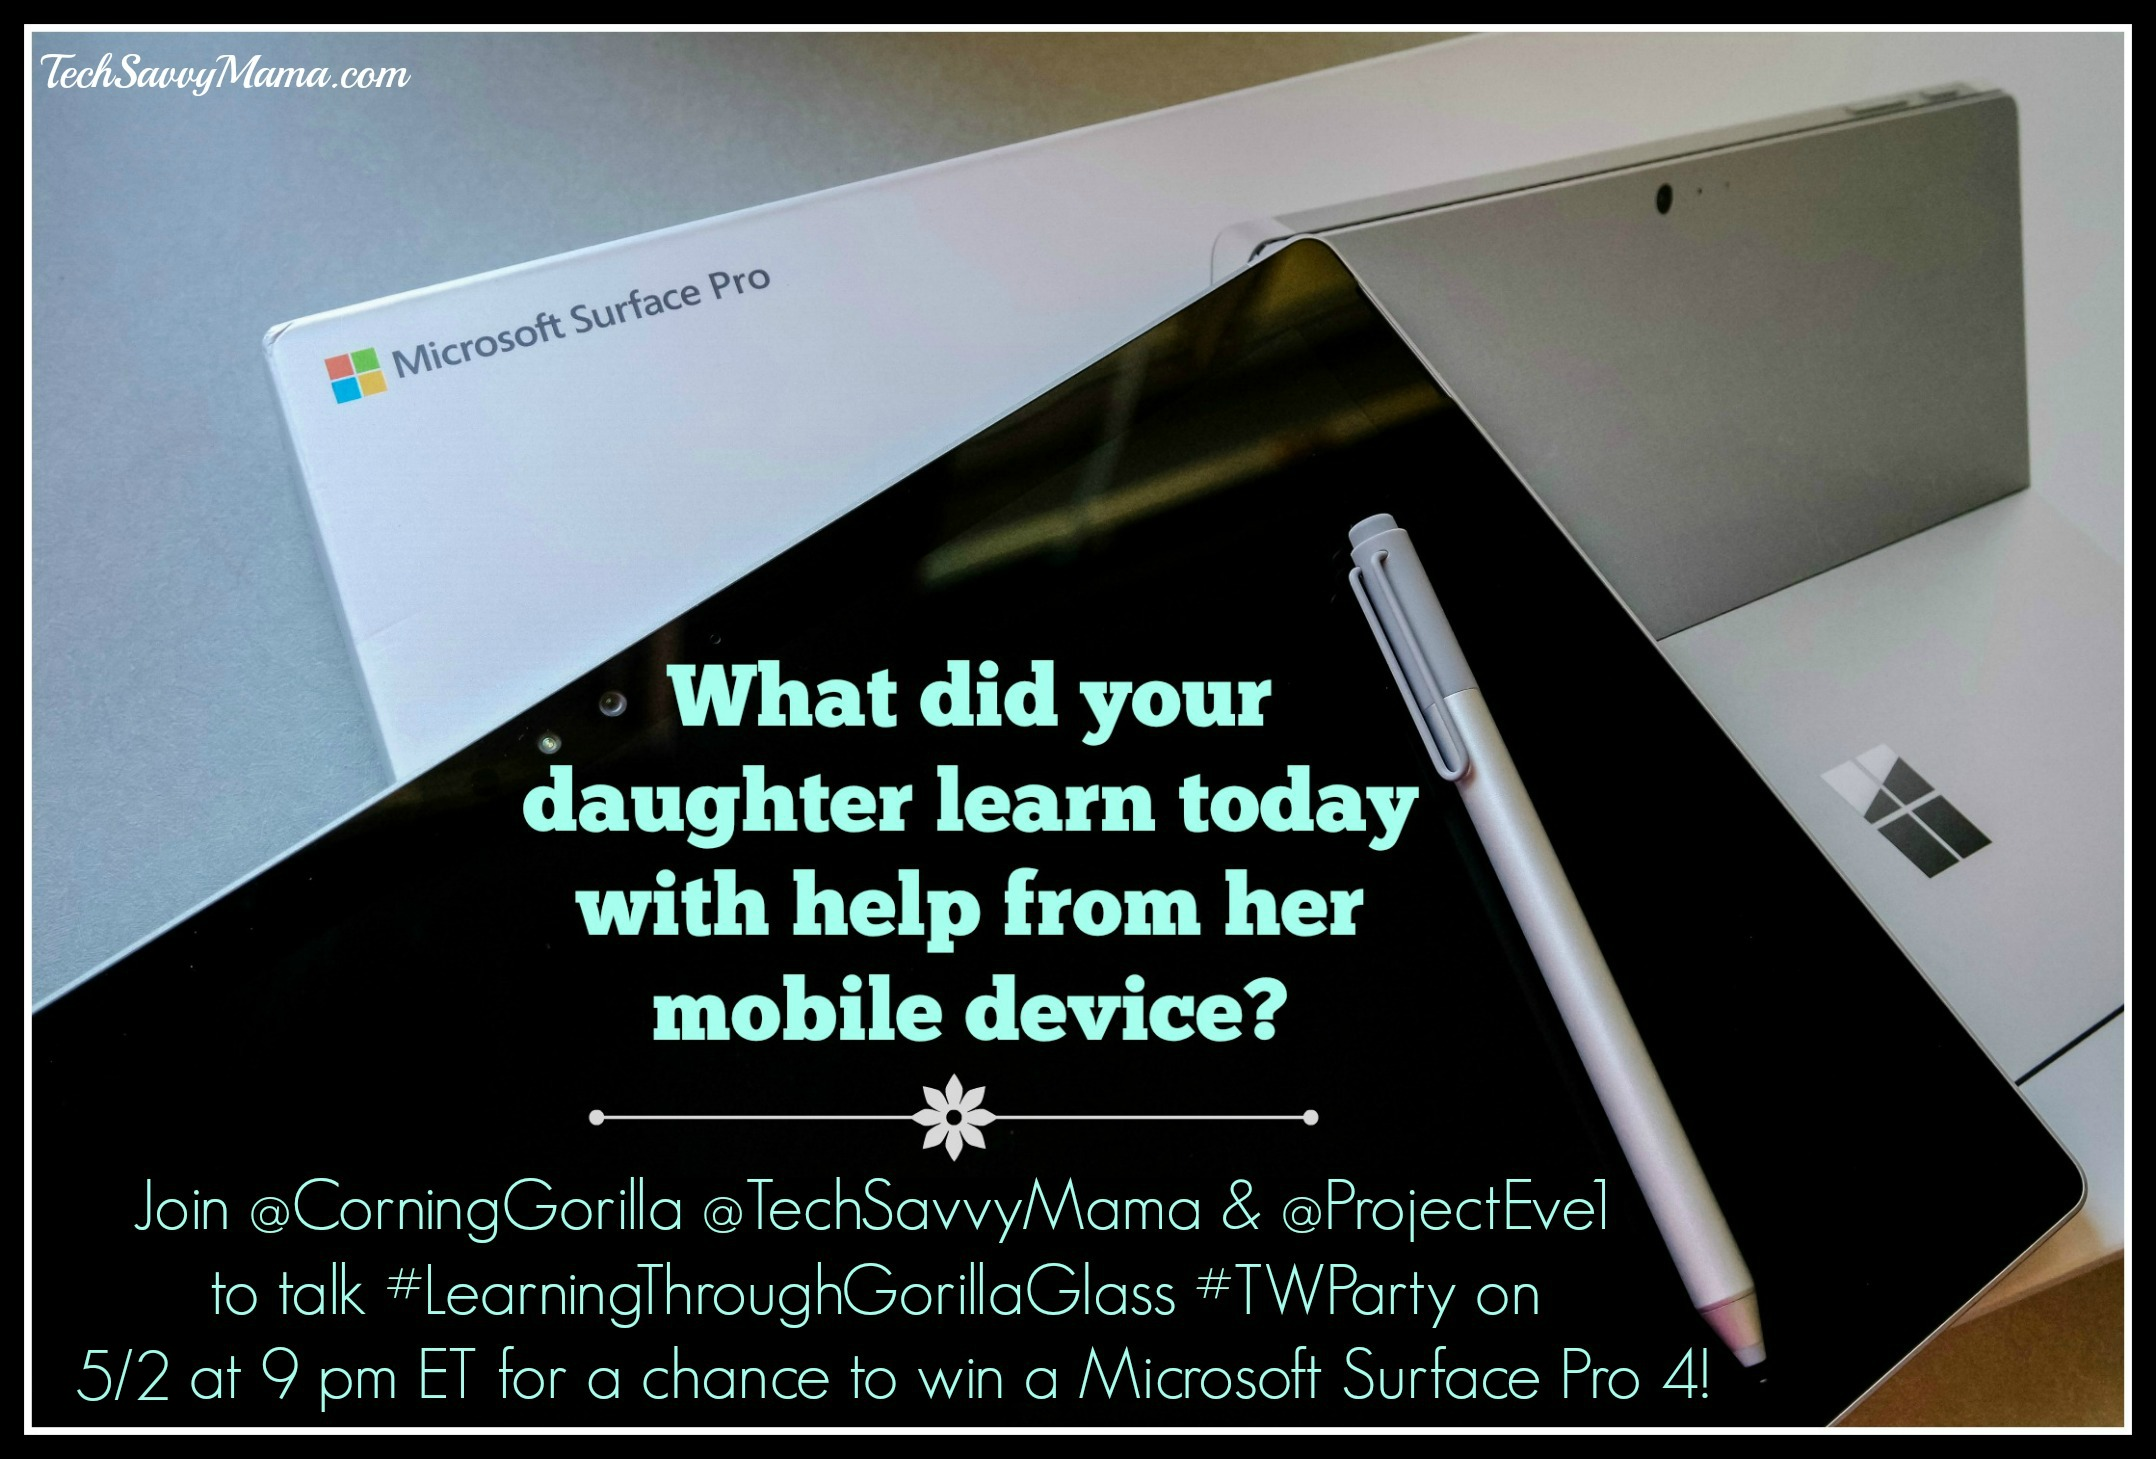 TONIGHT 9 pm ET: #LearningThroughGorillaGlass Twitter Party